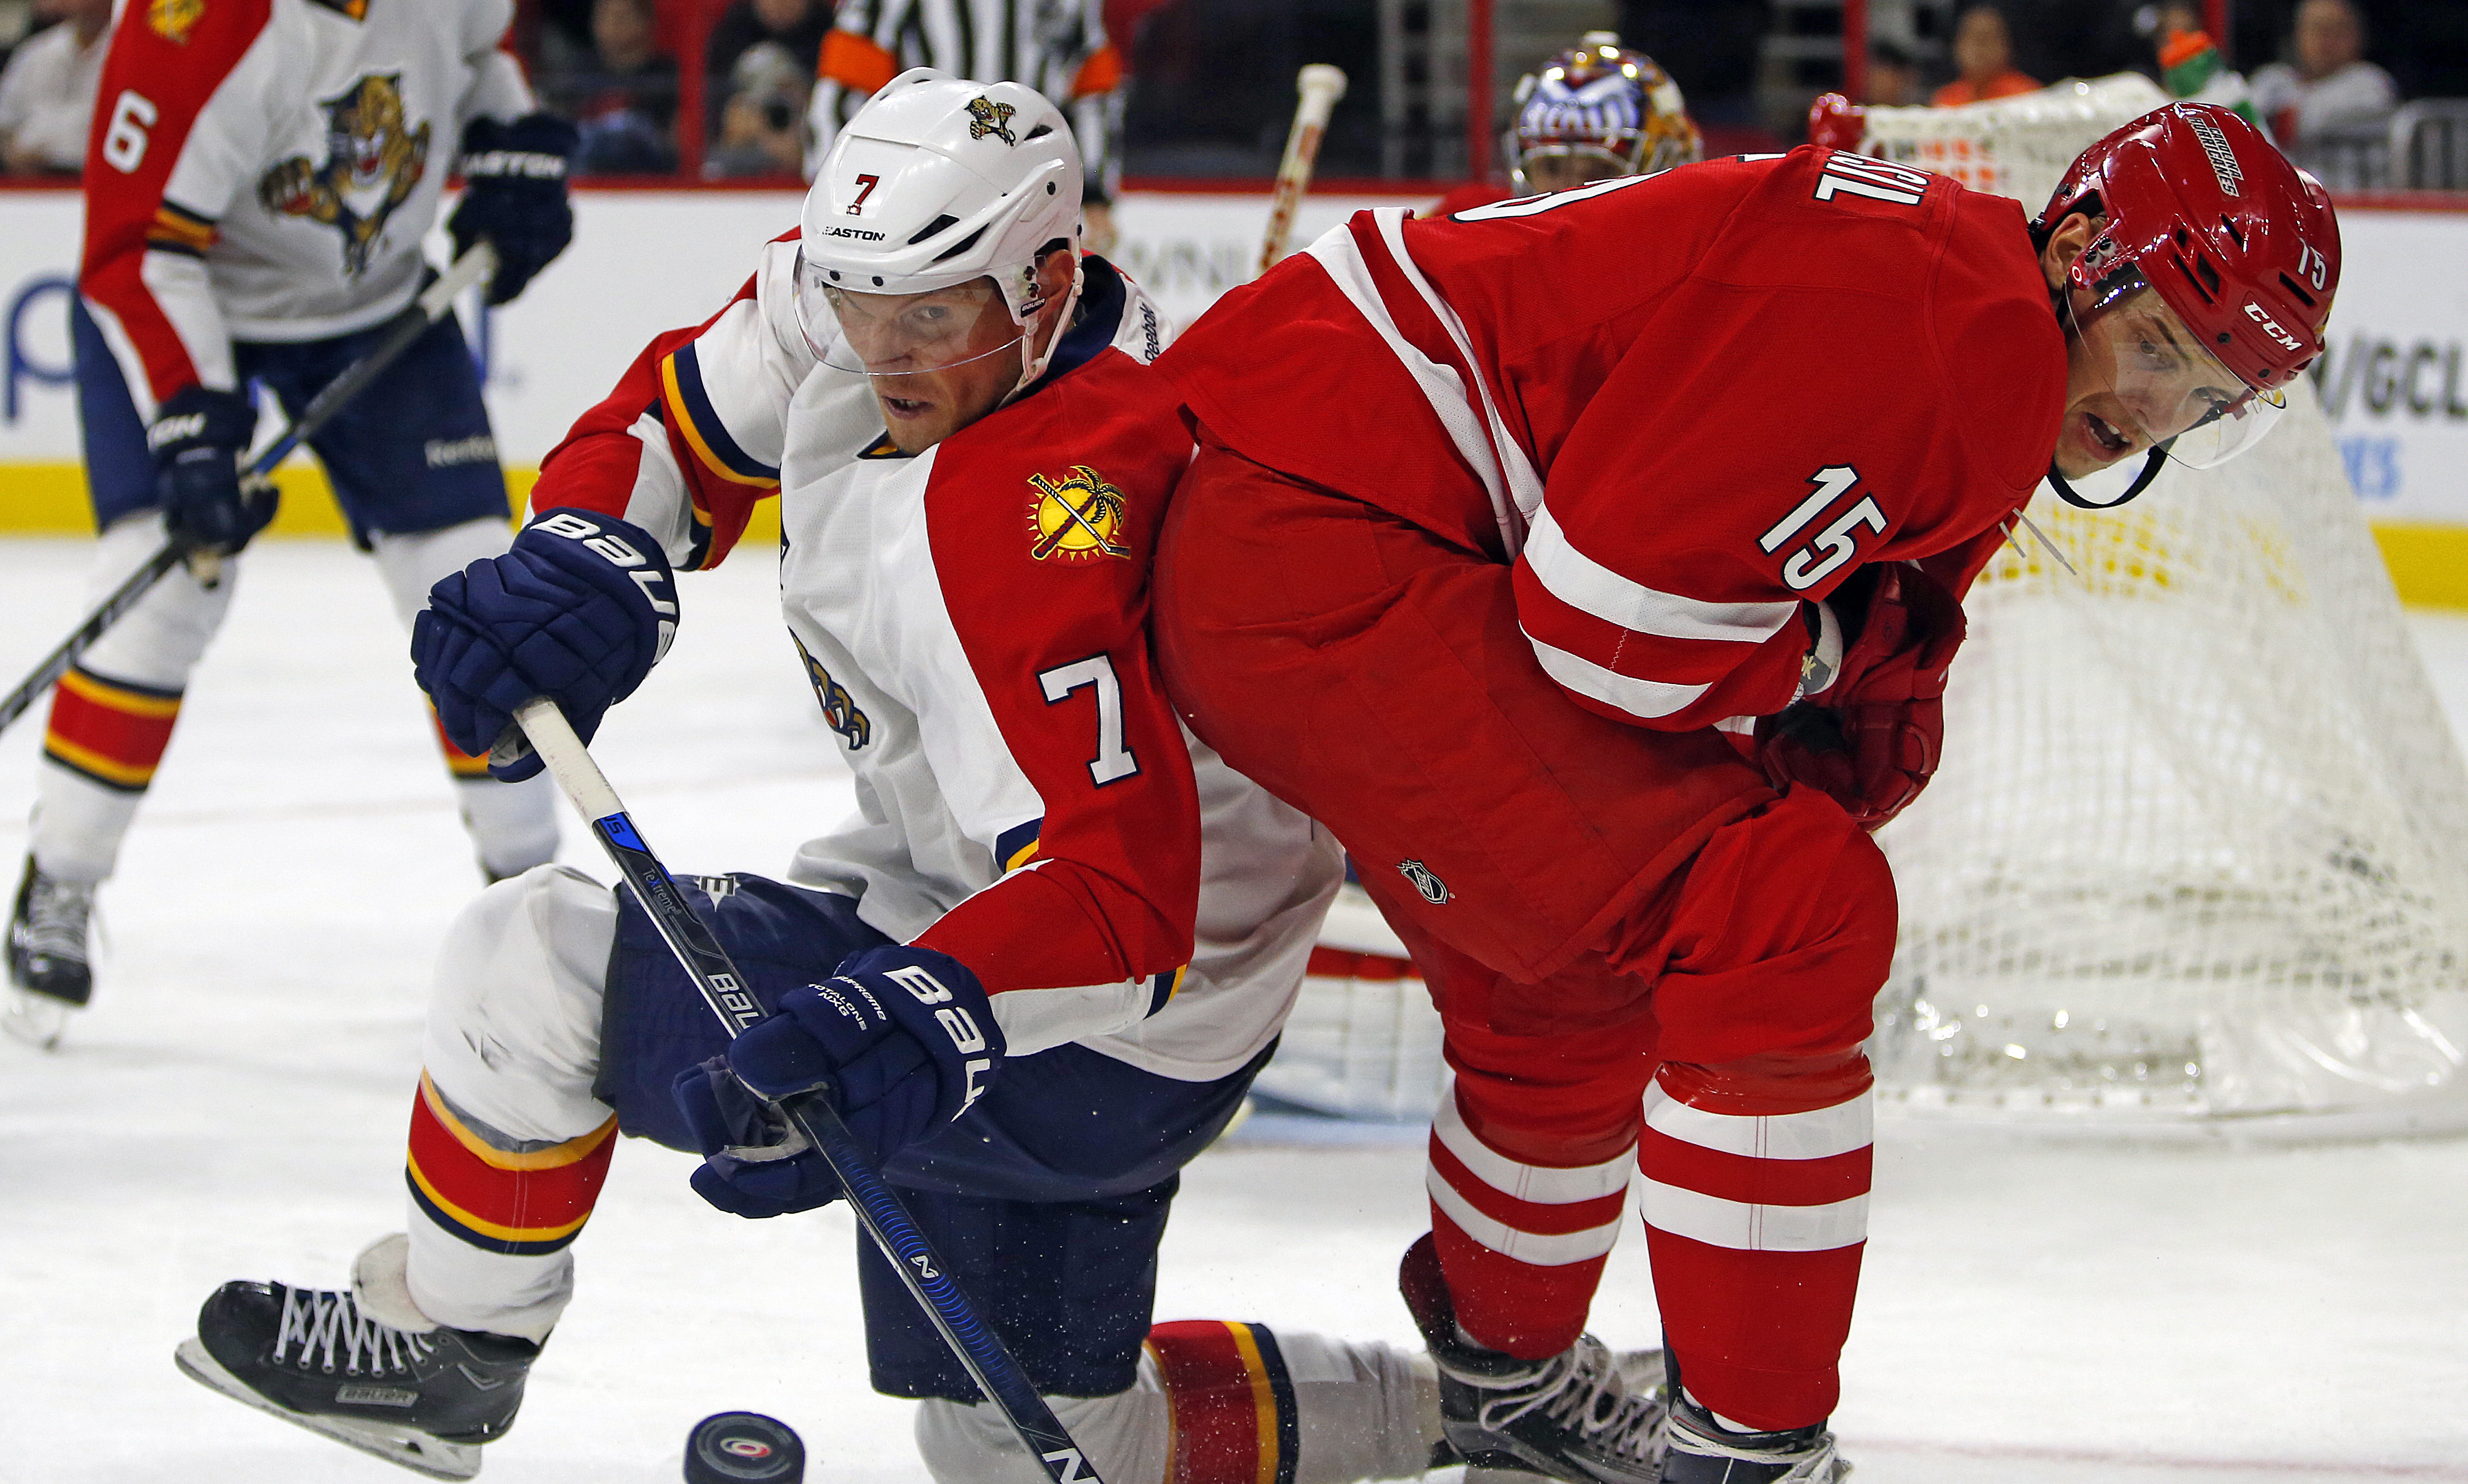 Florida Panthers' Dmitry Kulikov (7) of Russia, battles Carolina Hurricanes' Andrej Nestrasil (15) of Czech Republic for the puck, during the second period of an NHL hockey game, Tuesday, Oct. 13, 2015, in Raleigh, N.C. (AP Photo/Karl B DeBlaker)